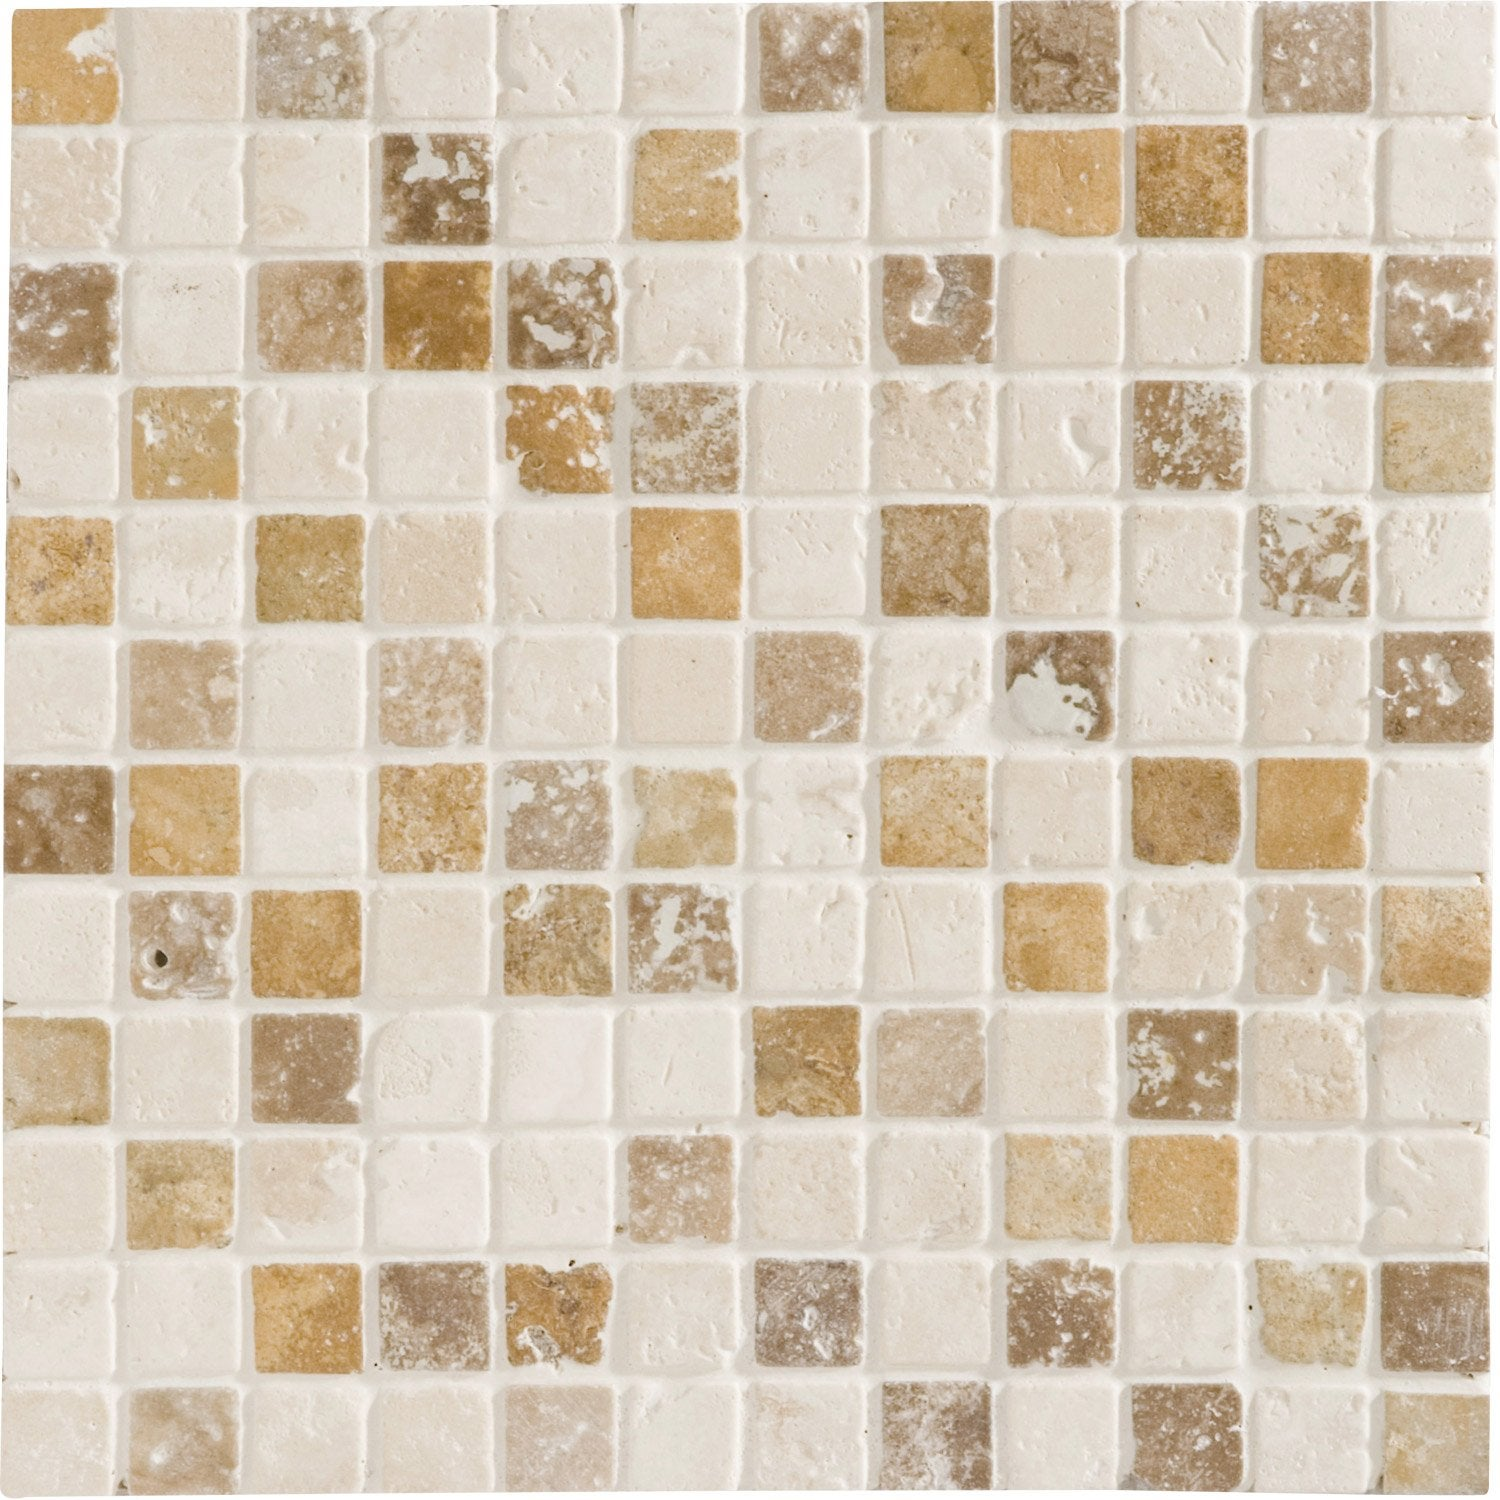 Mosa que mineral travertin artens mix cm leroy merlin for Mosaique travertin leroy merlin